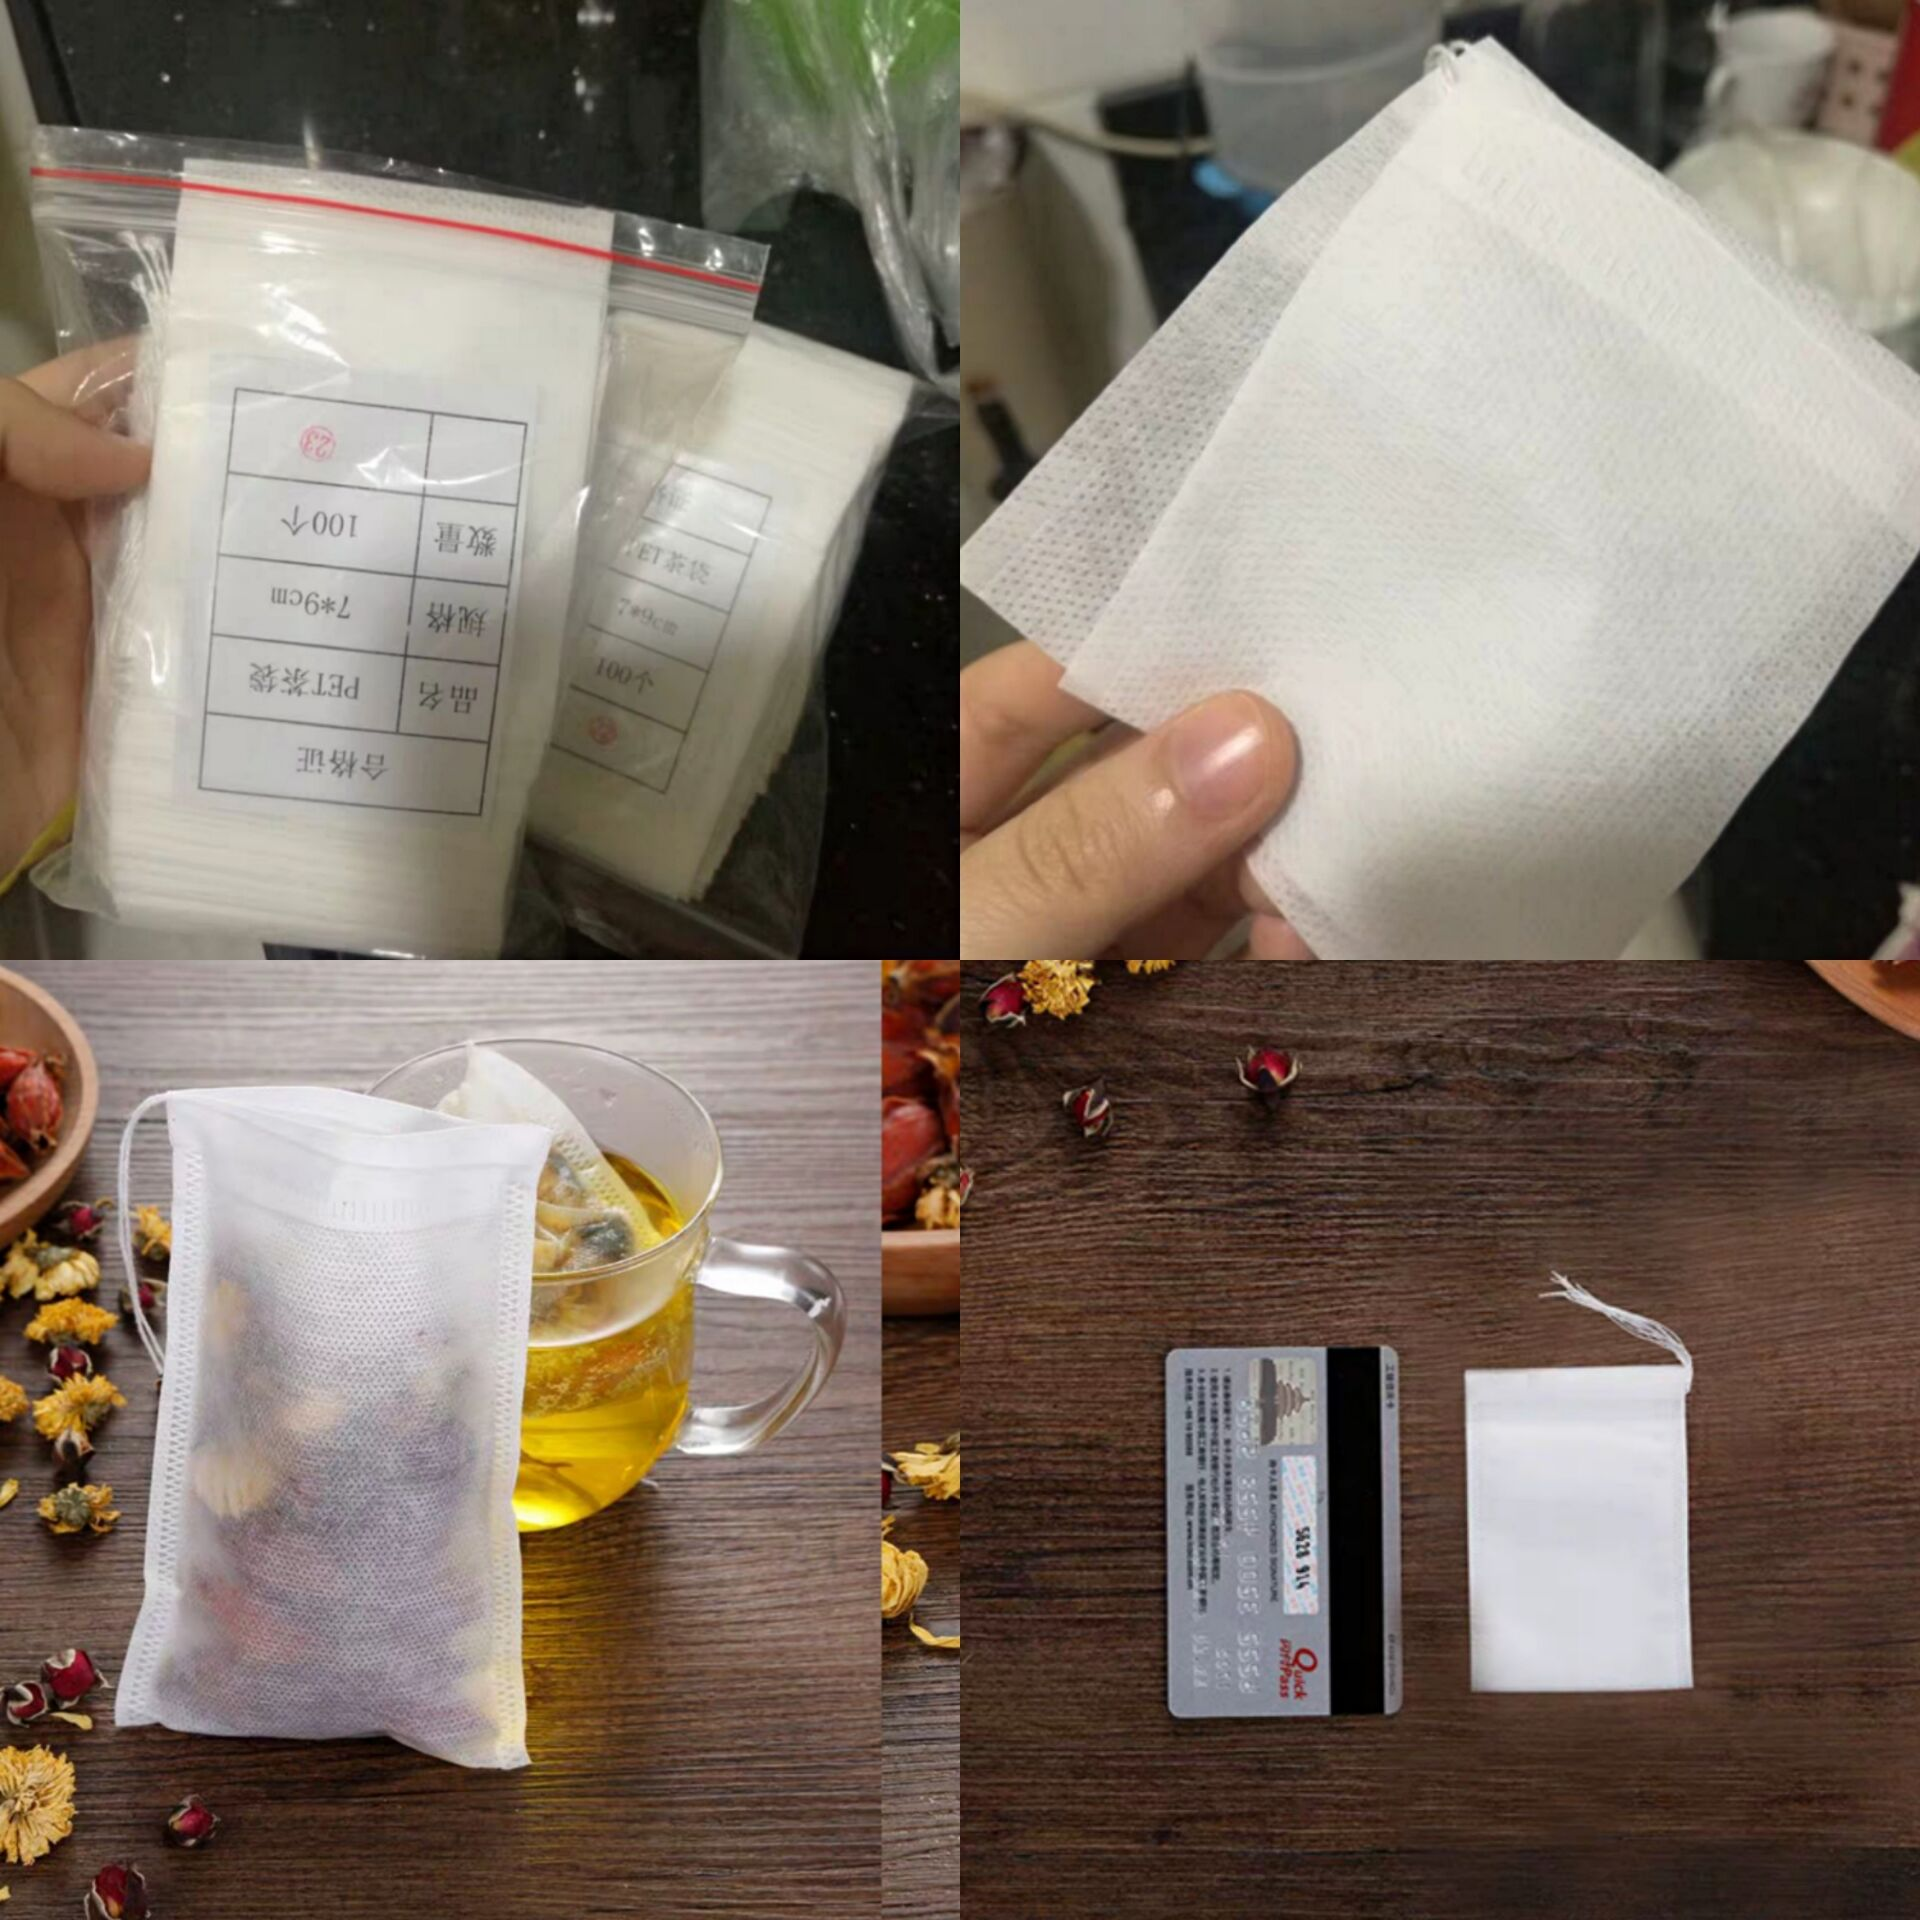 SHXING 100 Pcs Tea Bags Bags For Tea Bag Infuser With String Heal Seal 5.5 X 7CM Sachet Filter Paper Teabags Empty Tea Bags